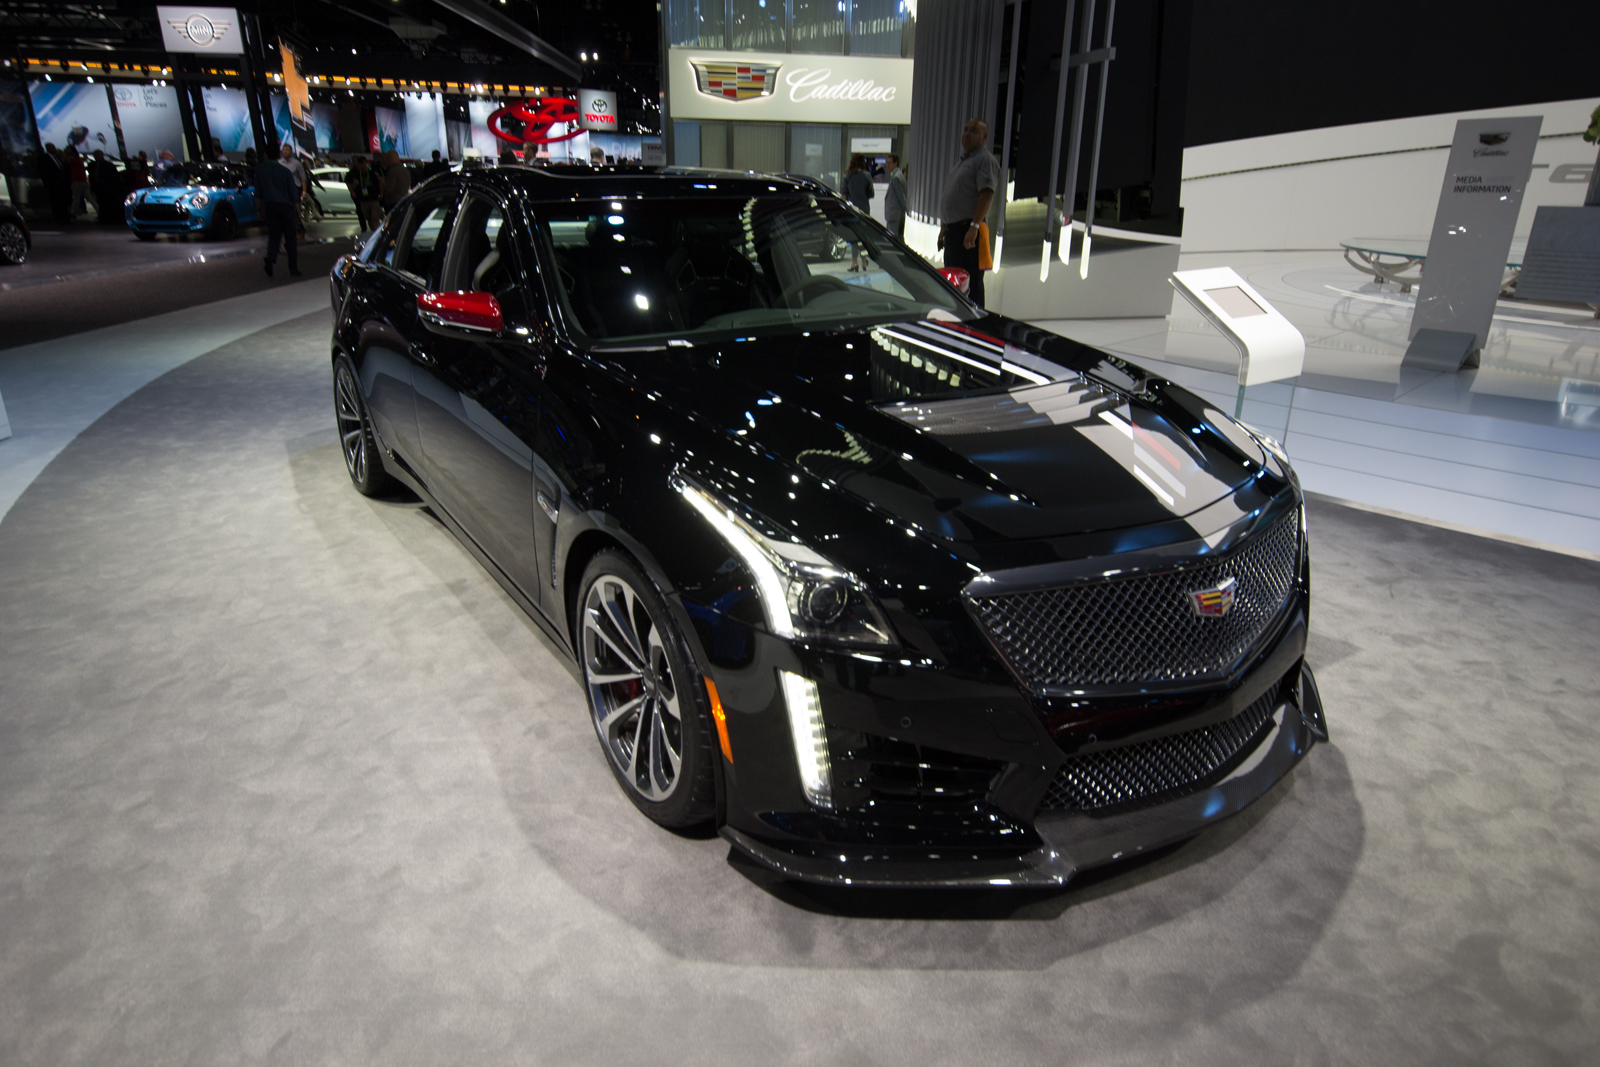 Cadillac celebrates 115 years with the 2018 cts v glacier metallic edition gm inside news - Cadillac cts v glacier metallic edition ...